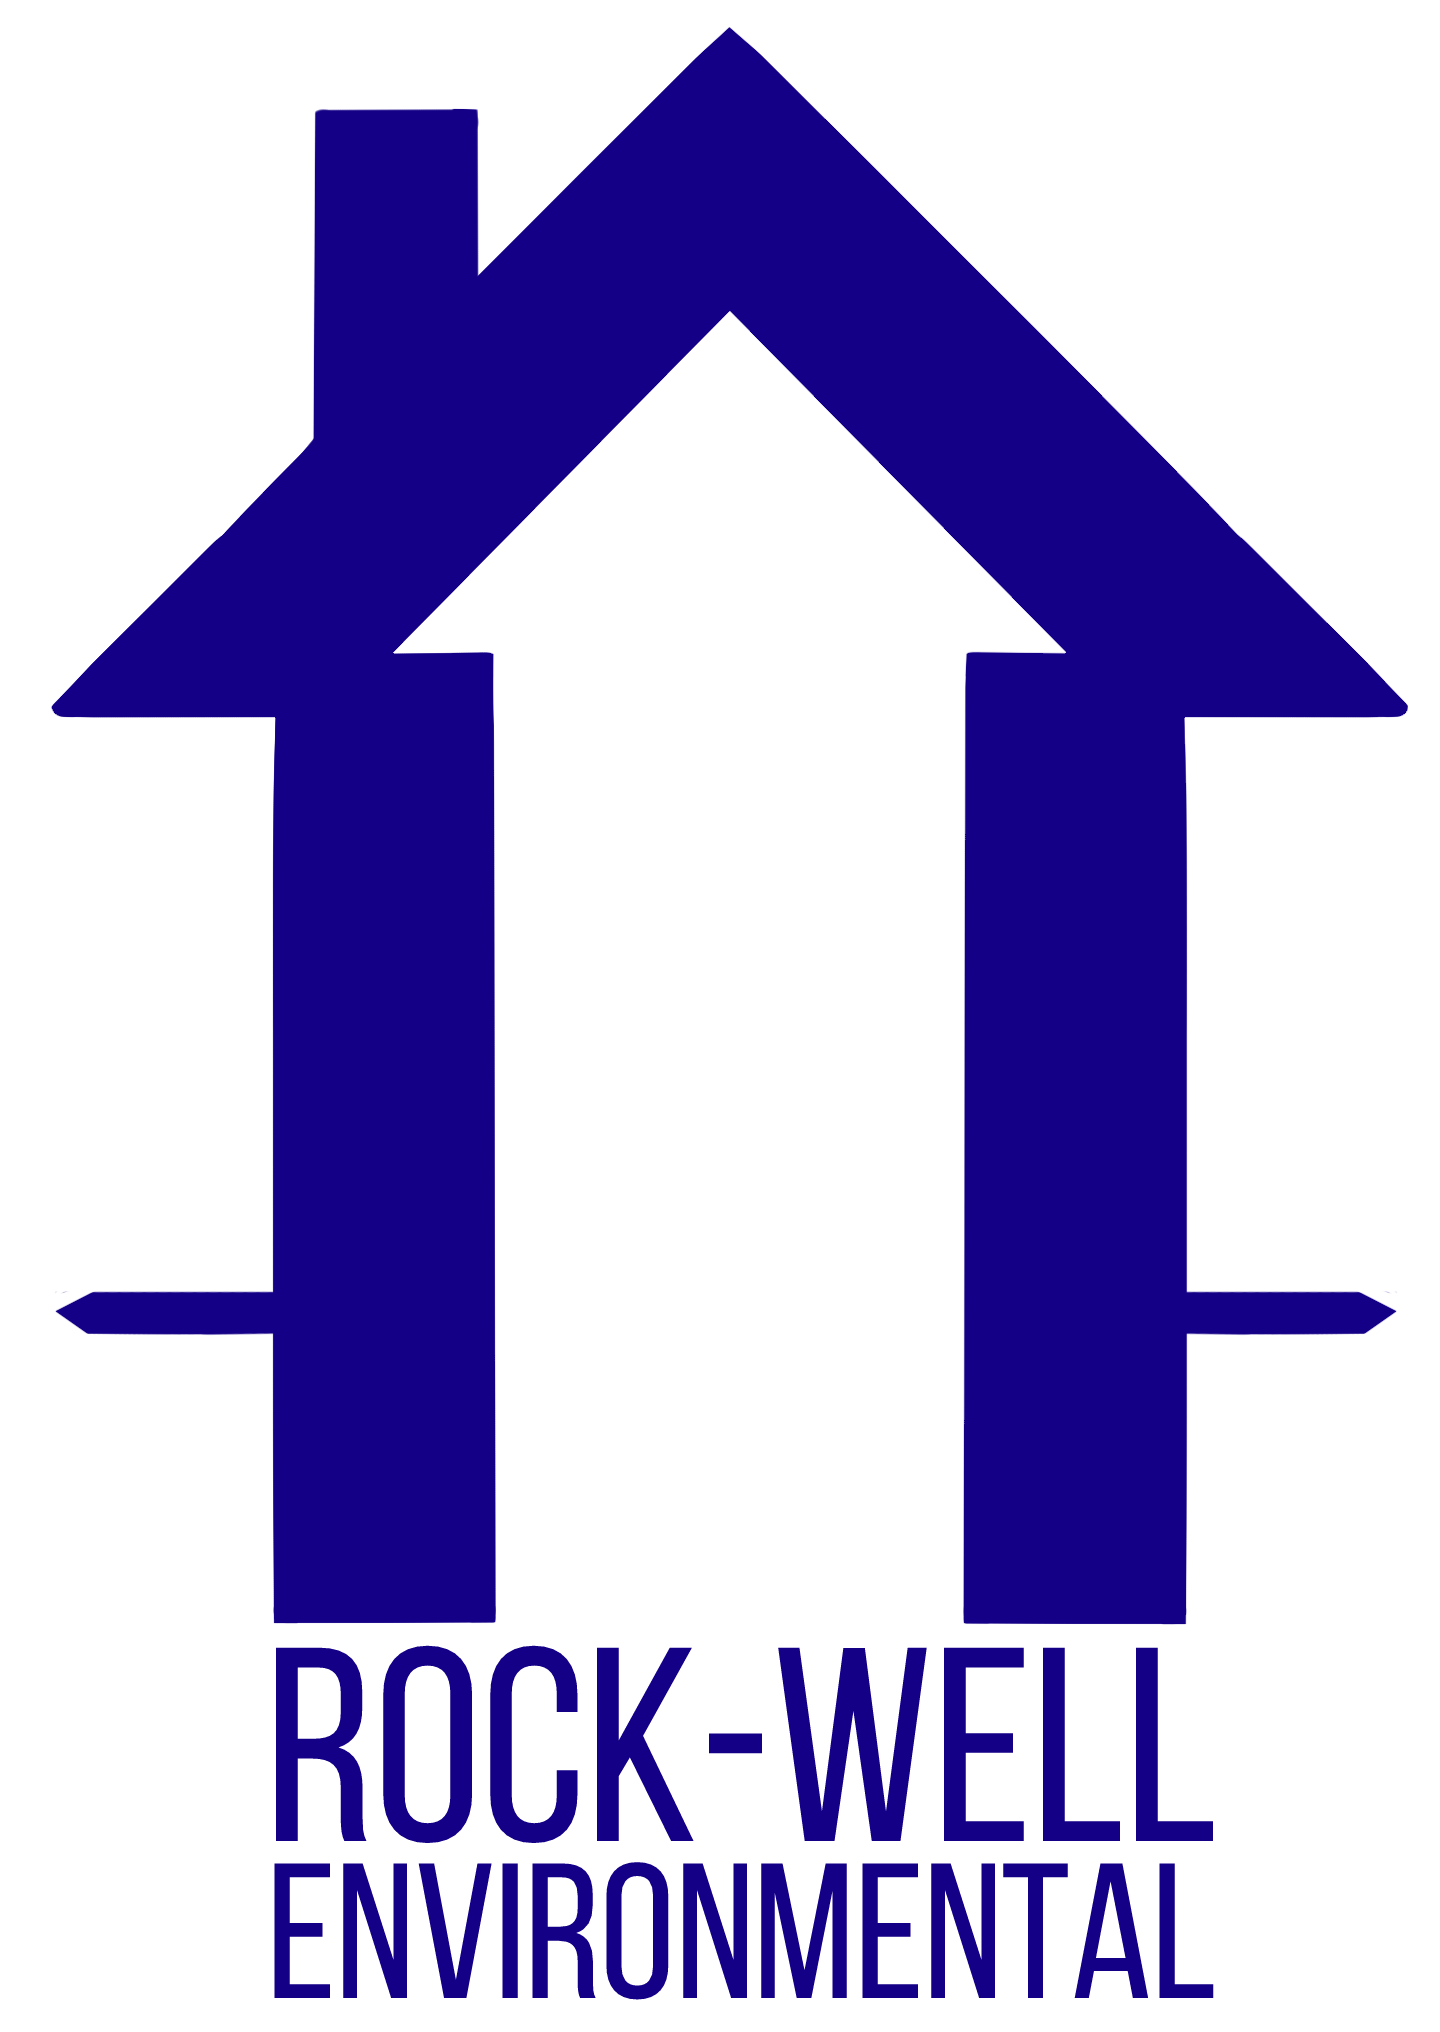 Rock-Well Environmental